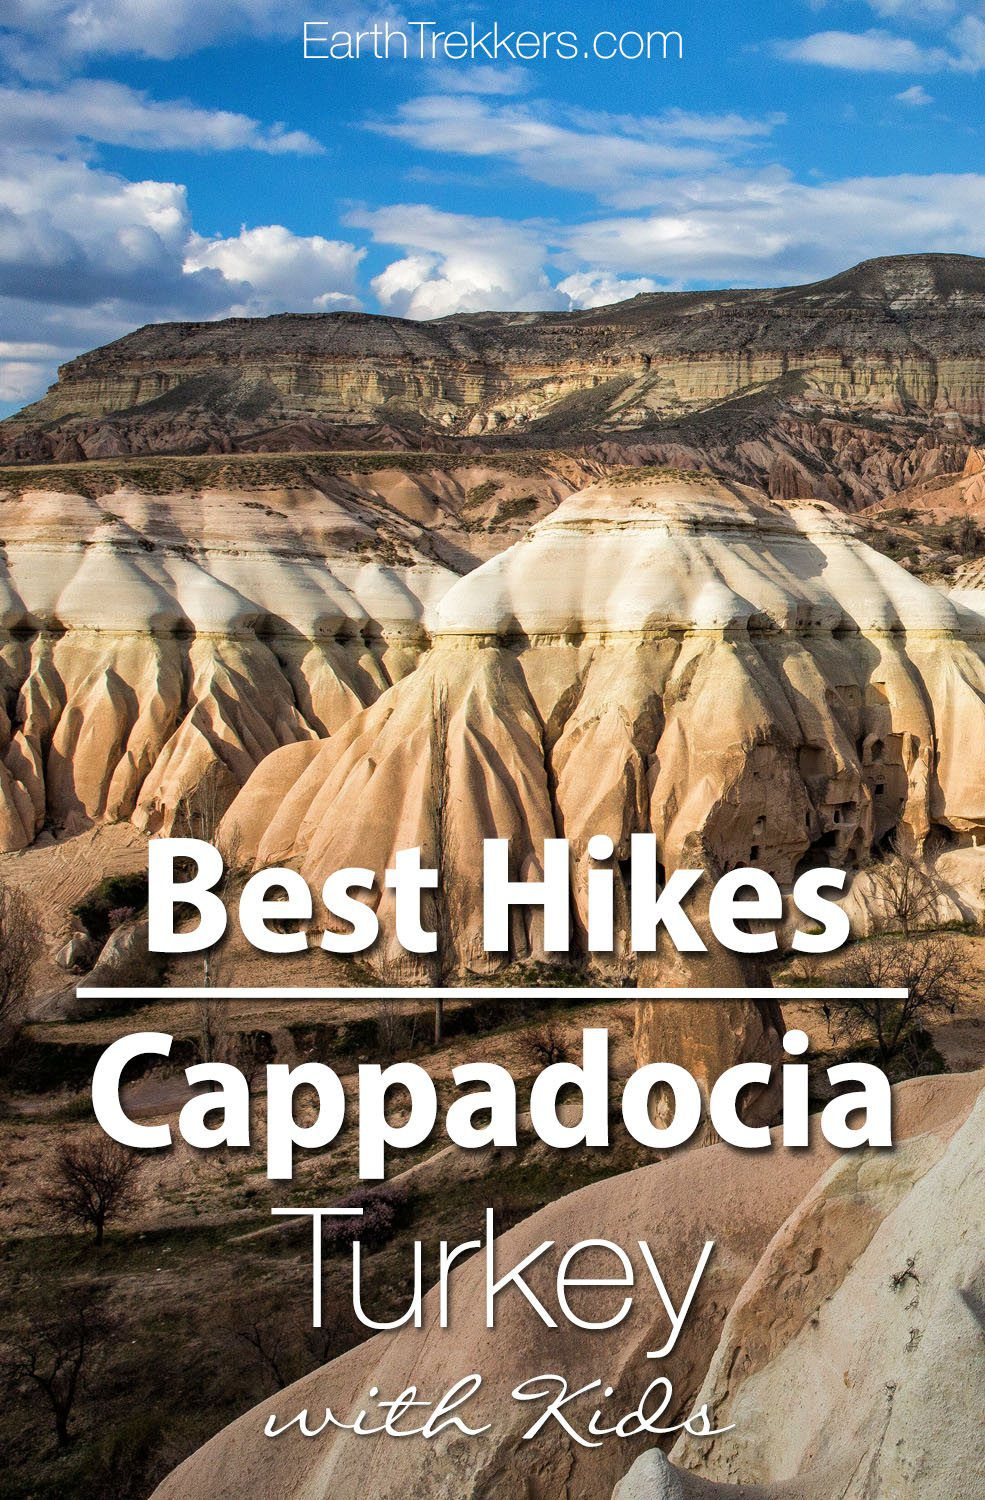 Cappadocia Turkey Best Hikes with Kids